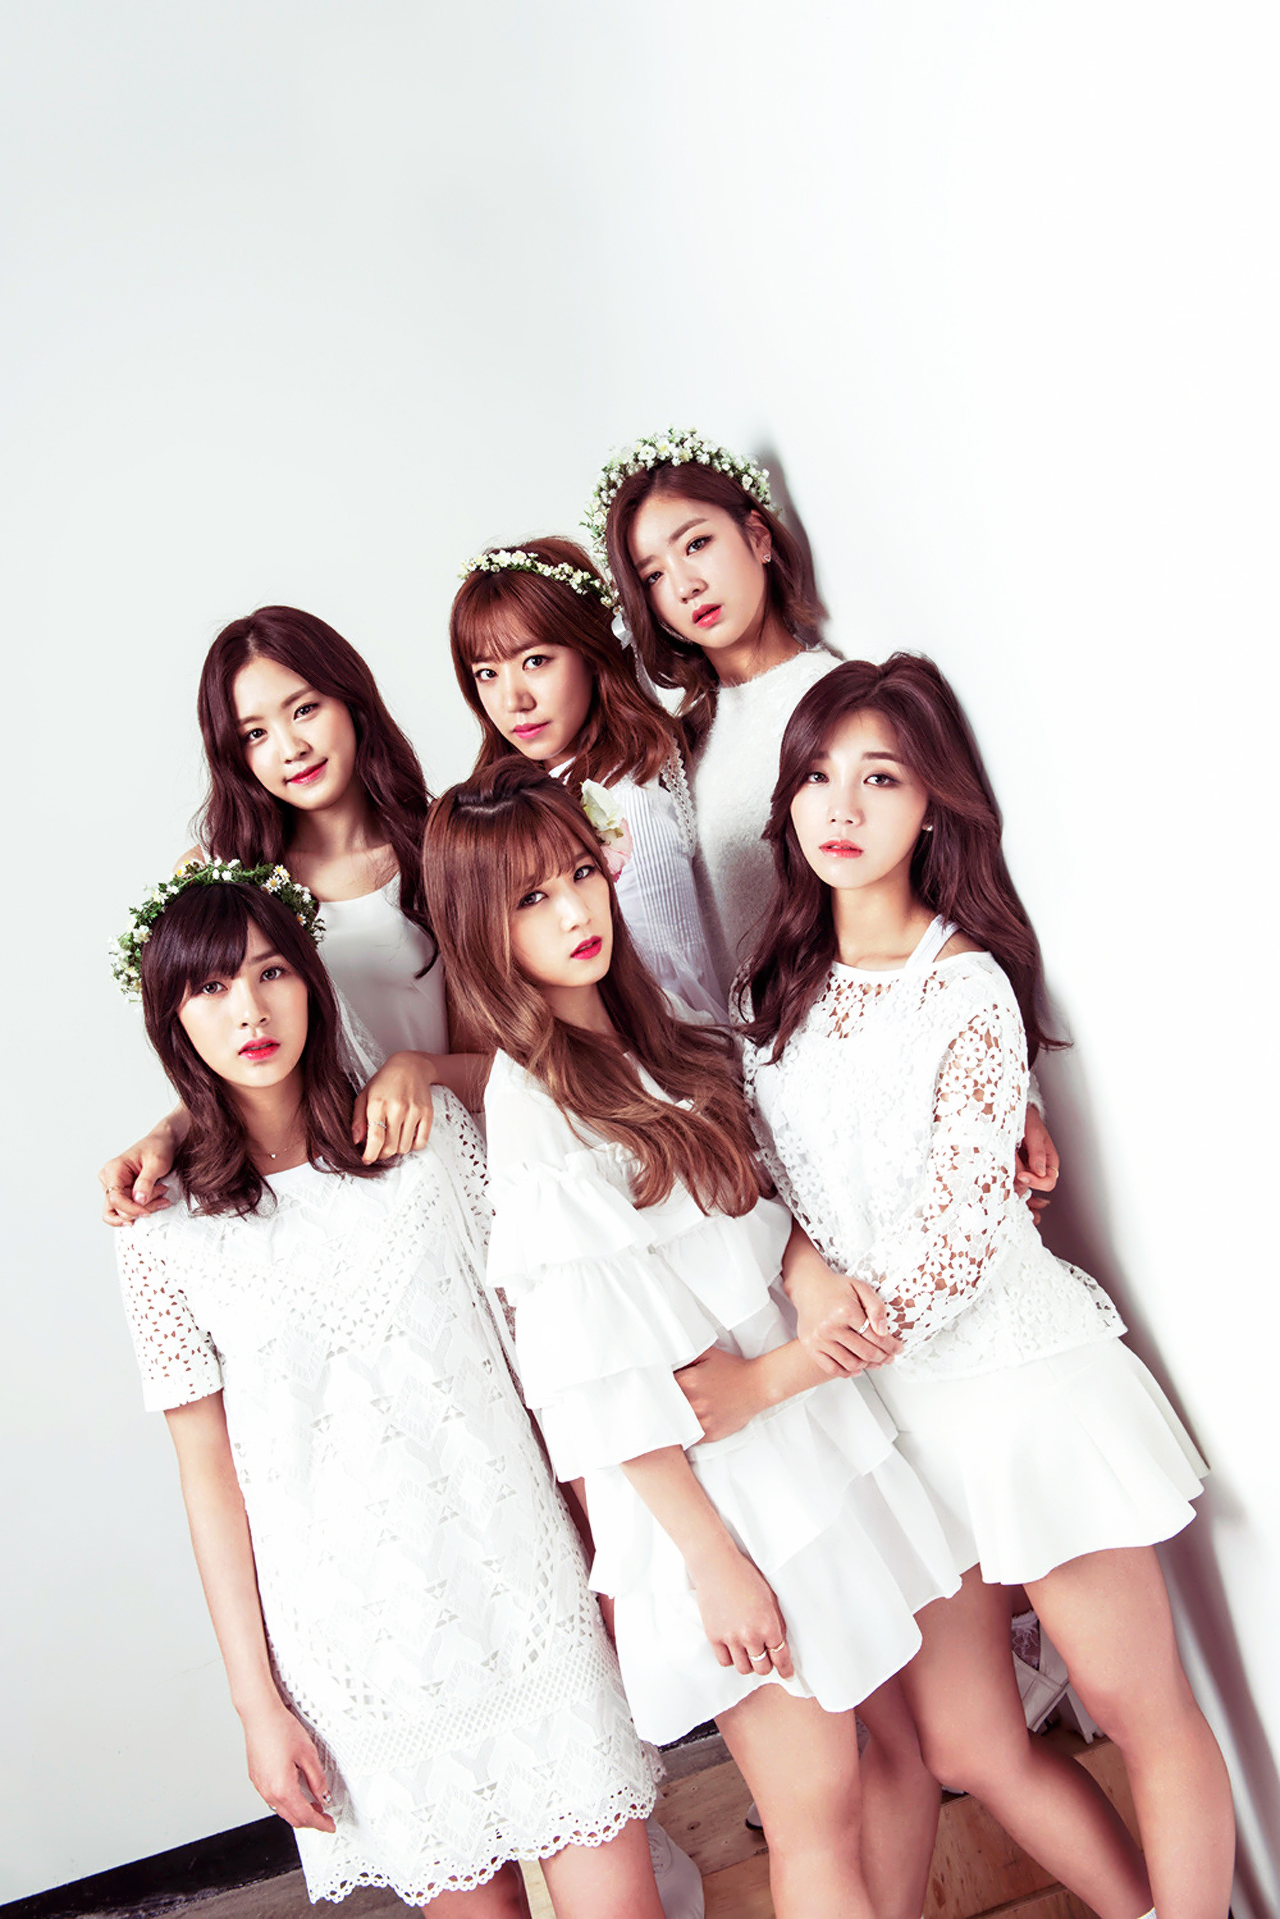 Korea S Group A Pink Images For Aj Magazine Hd Wallpaper And Background Photos